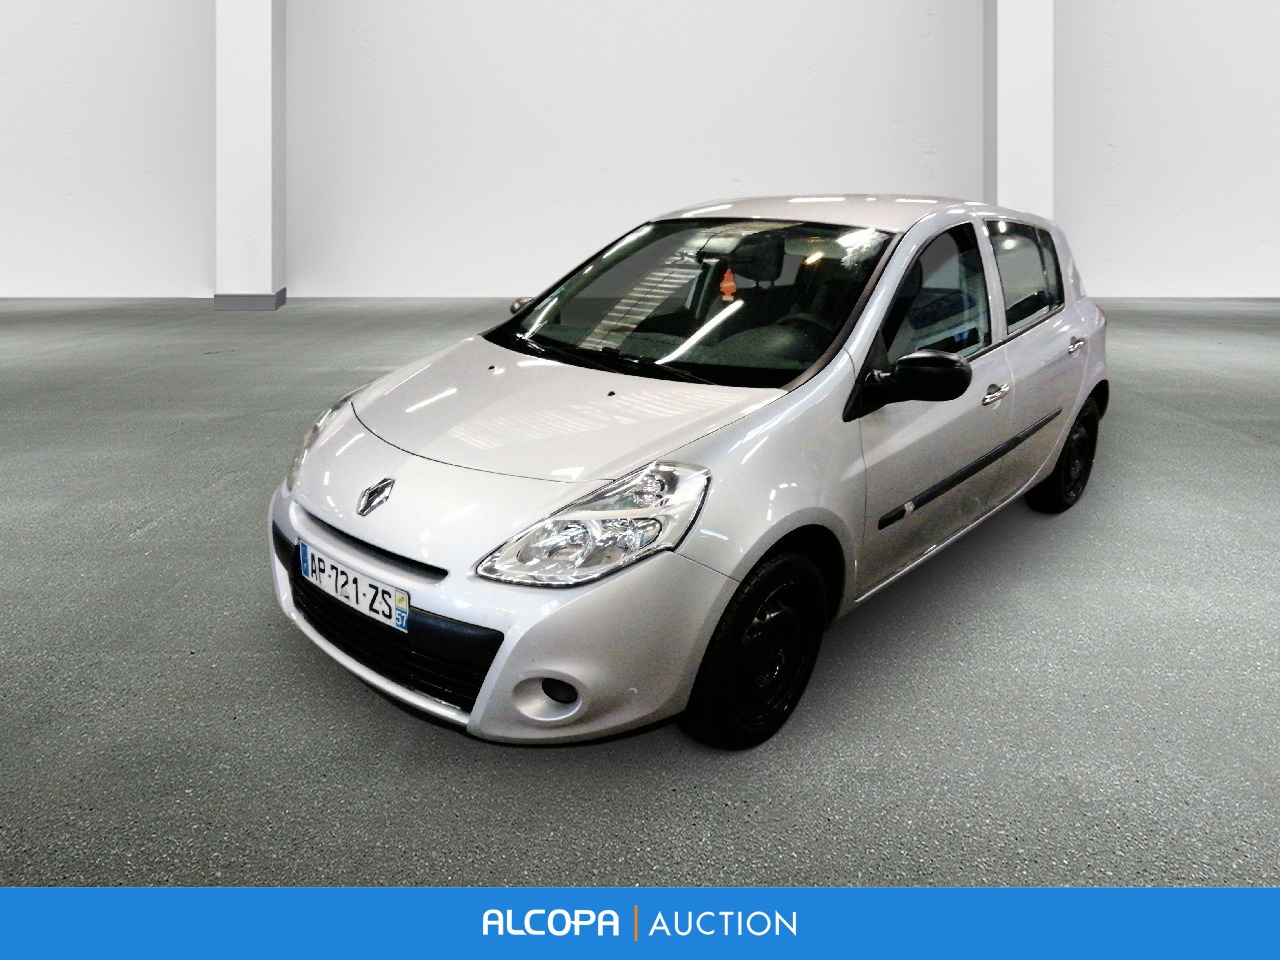 renault clio iii clio iii dci 70 115g eco2 alcopa auction. Black Bedroom Furniture Sets. Home Design Ideas